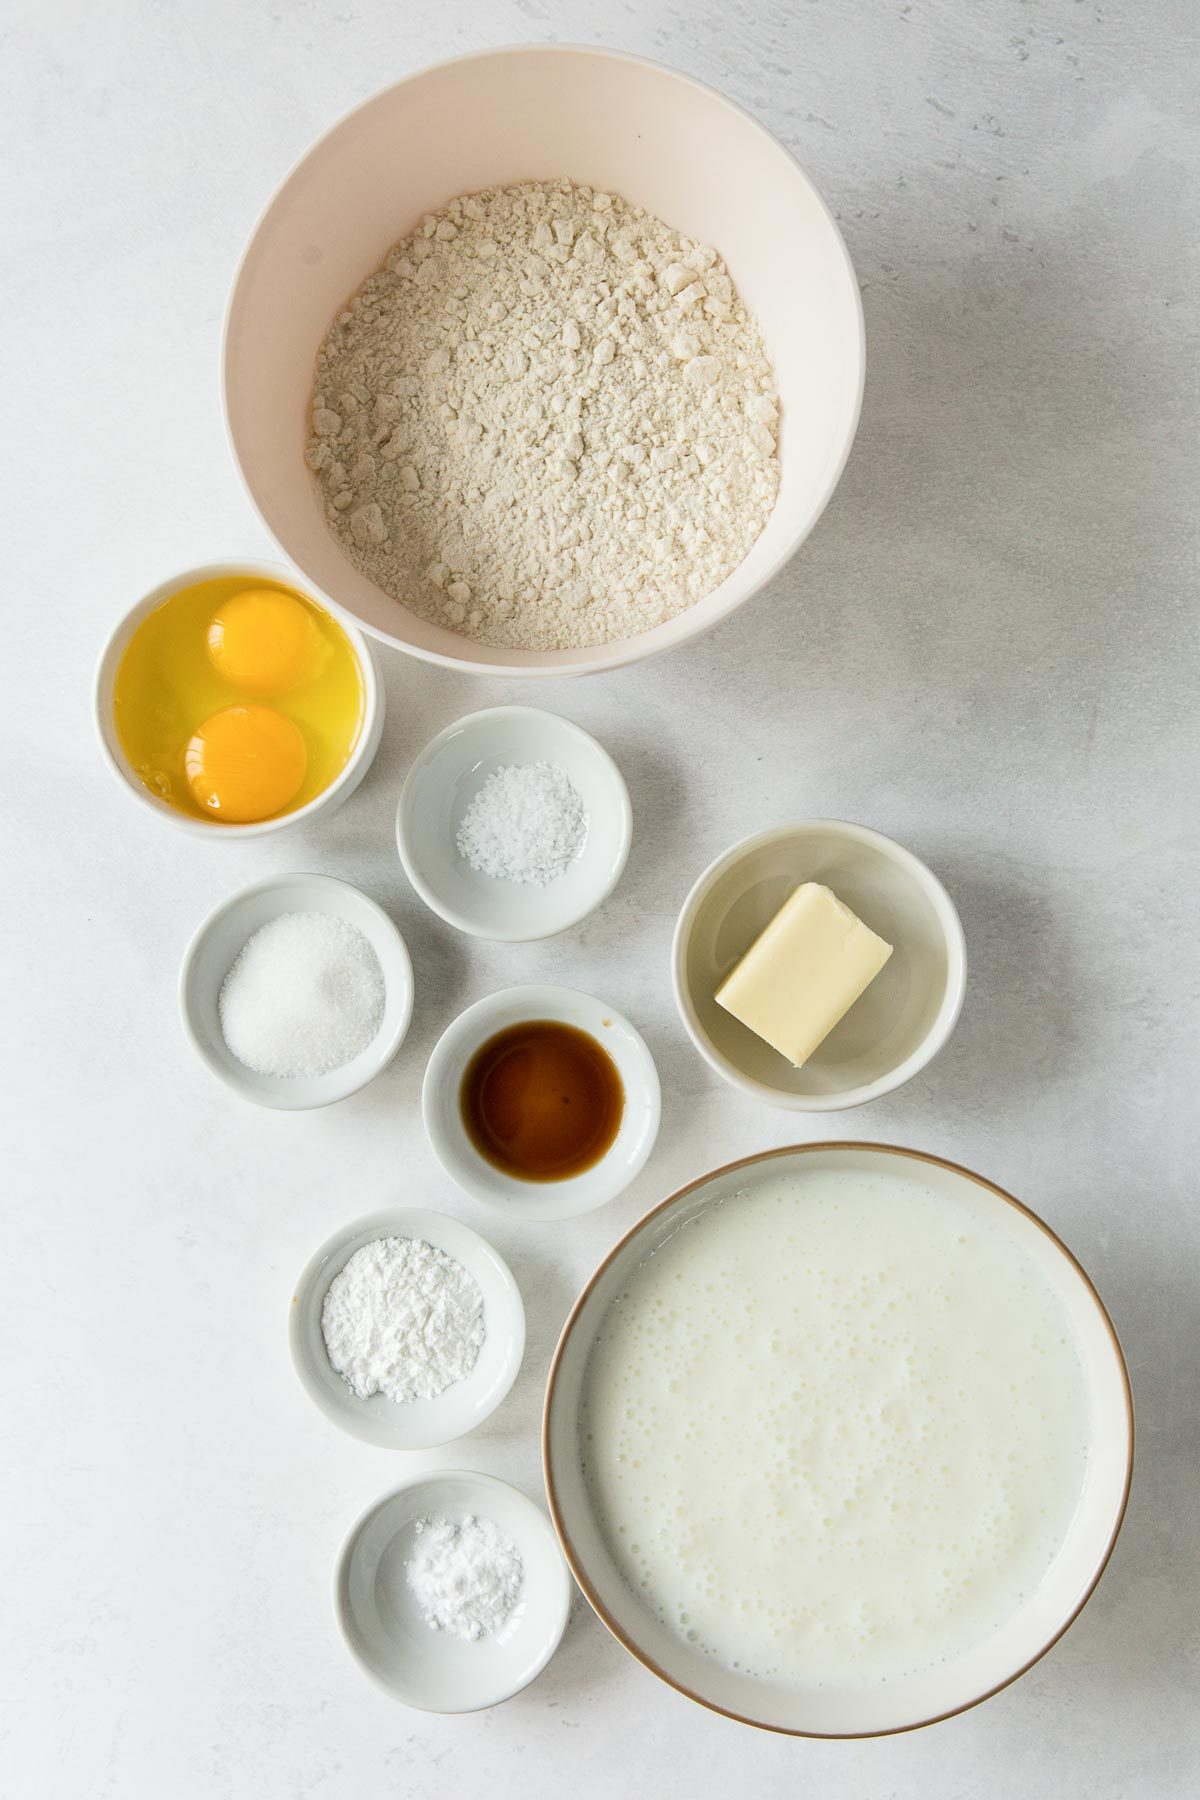 ingredients for buttermilk pancakes